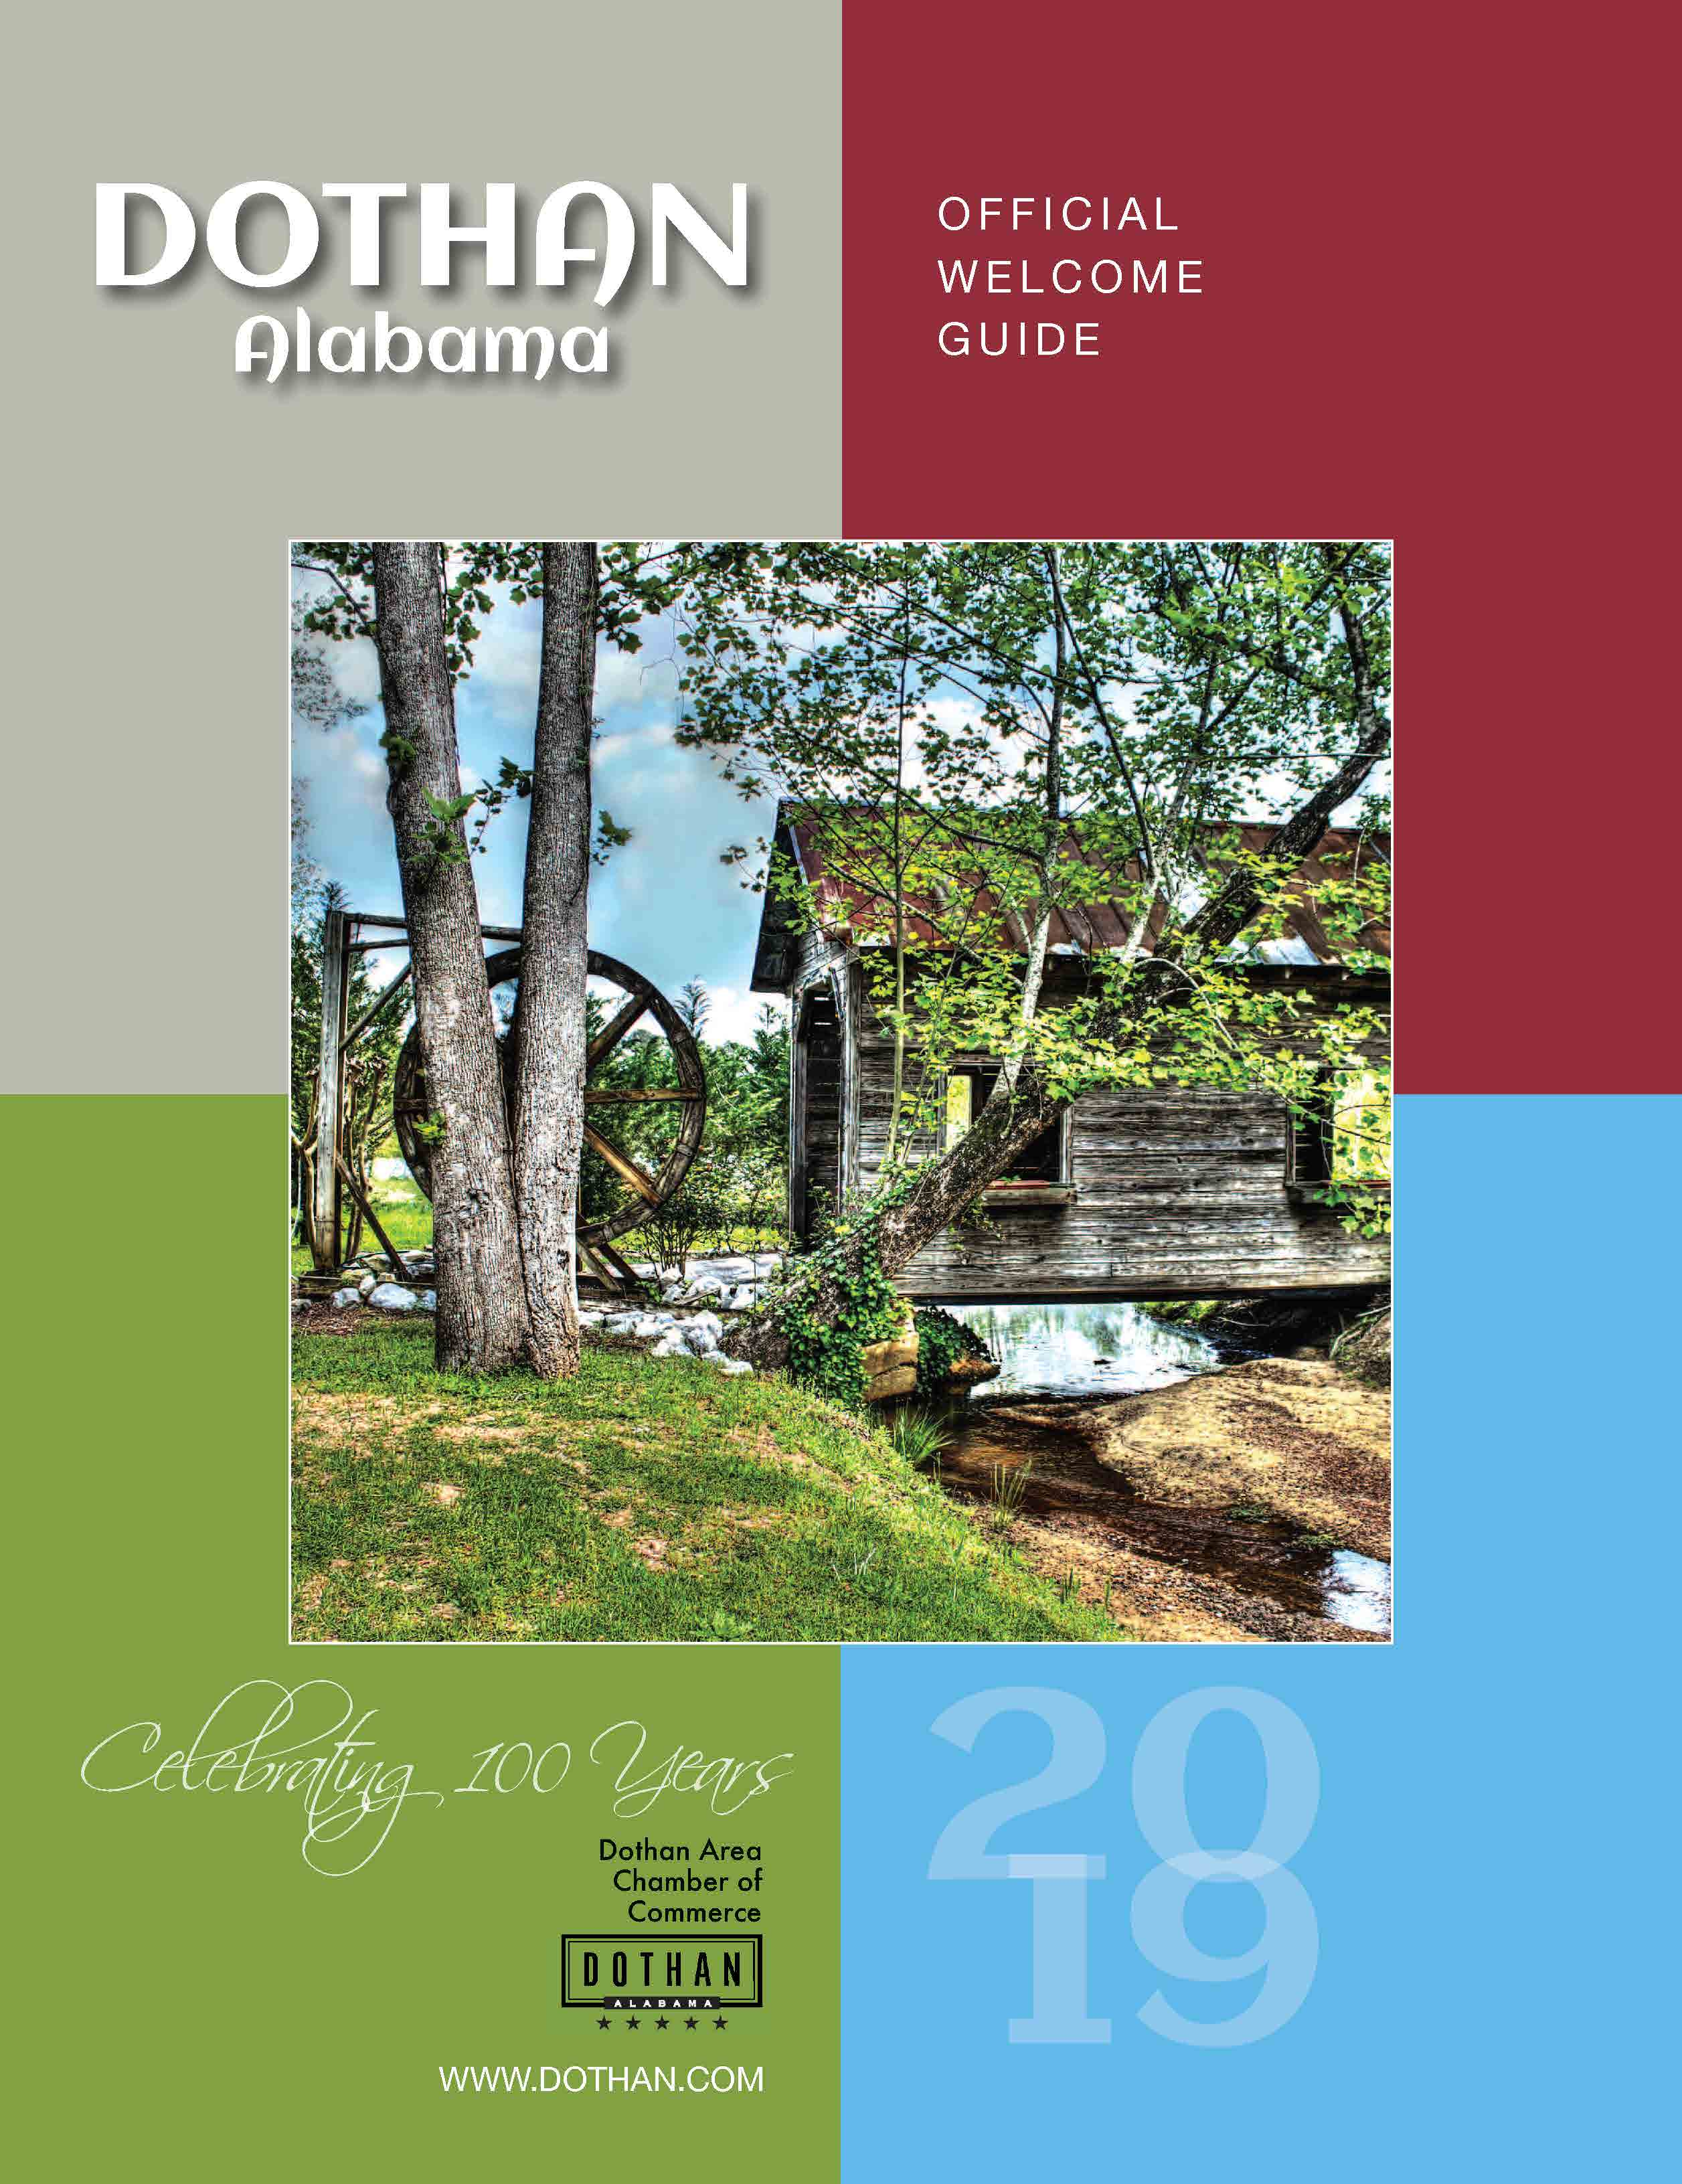 2019 Dothan Official Welcome Guide Opens in new window